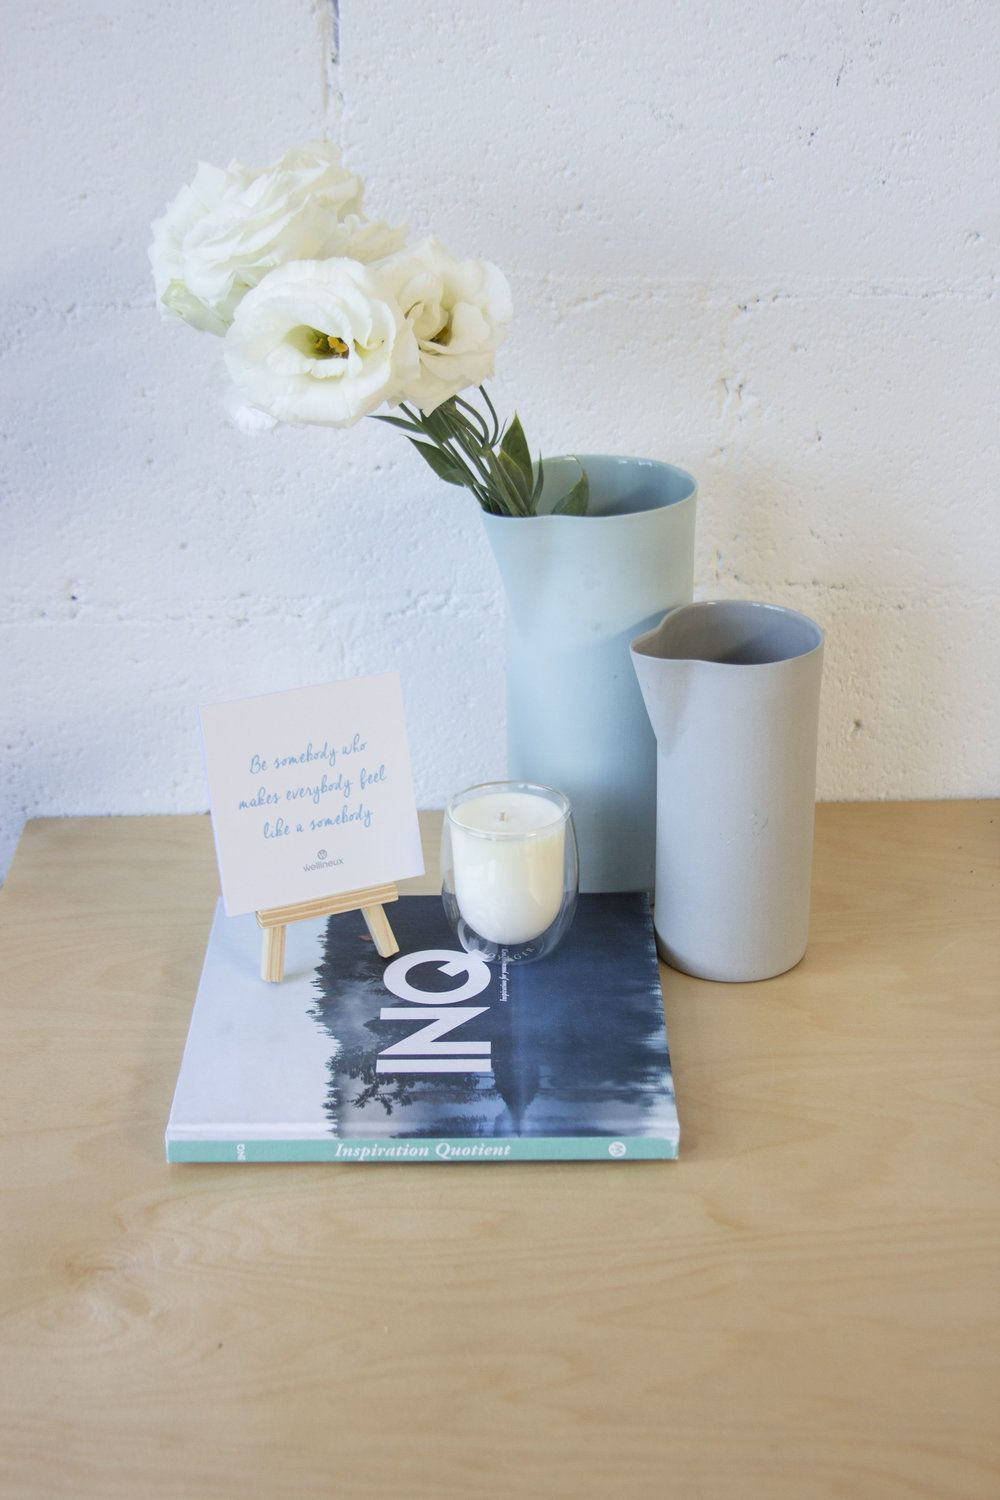 Inspiration Quotient (INQ) Coffee Table Book (With images ... on Coffee Table Inspiration  id=11752